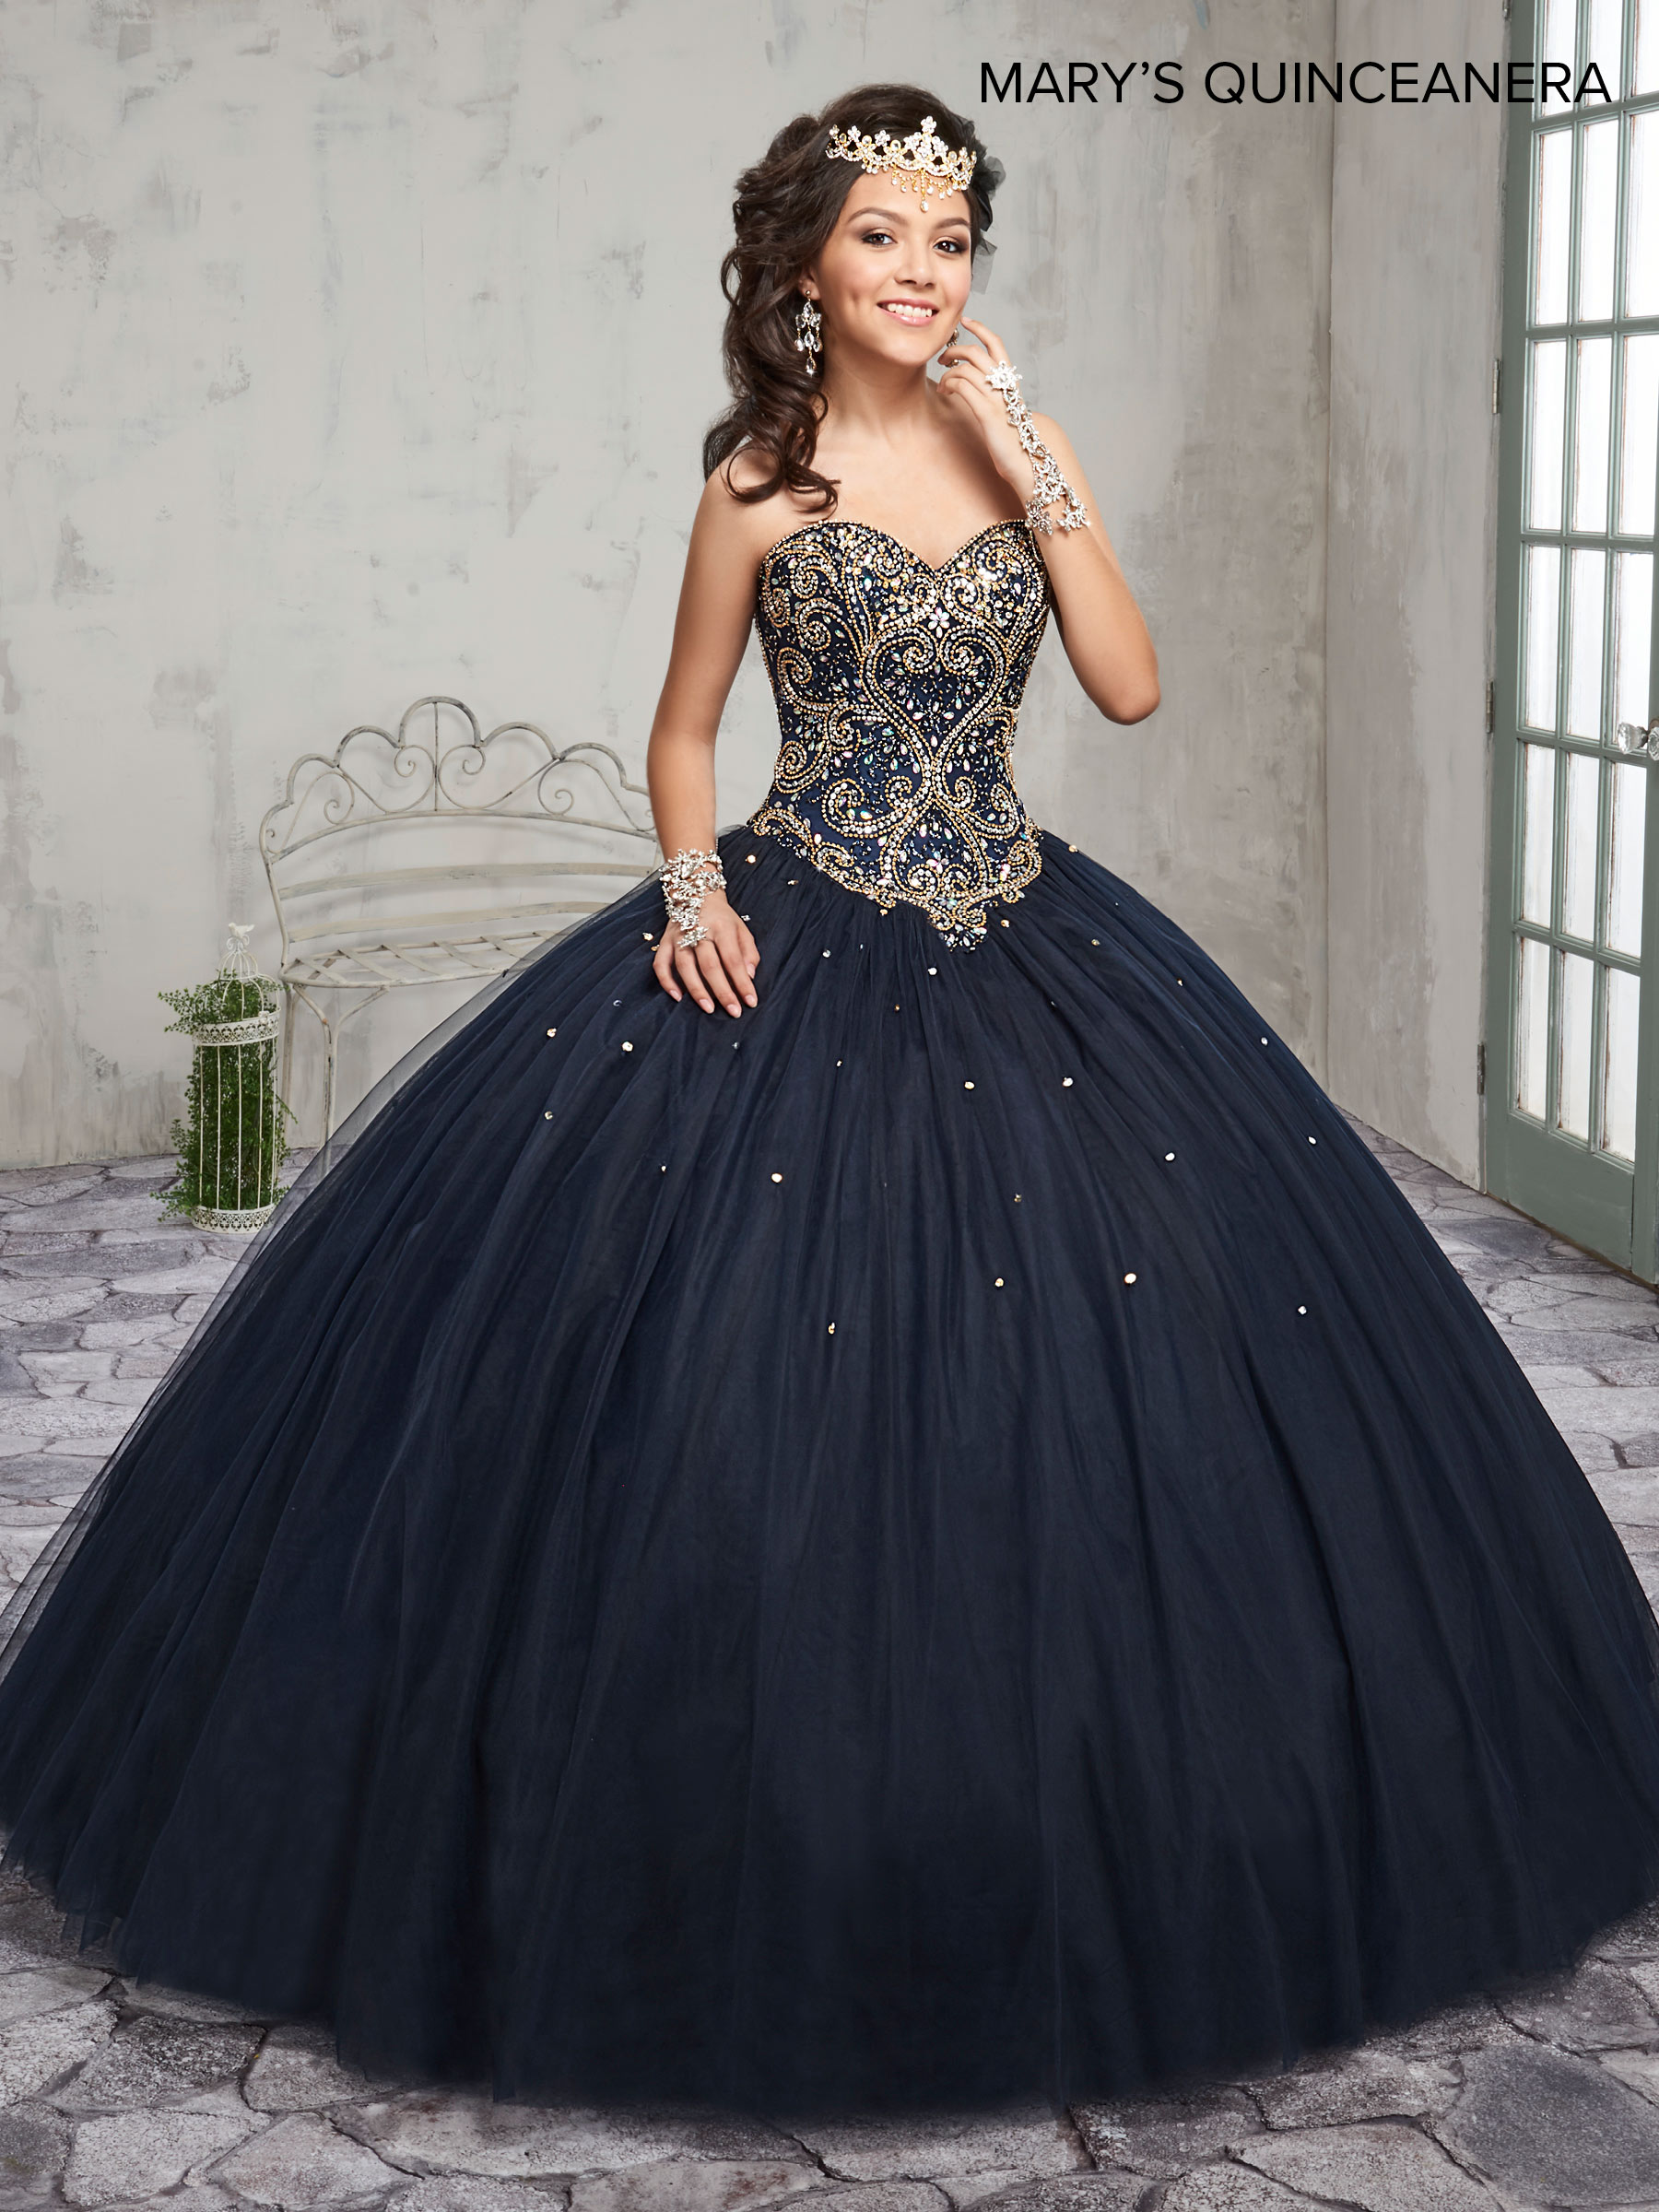 Marys Quinceanera Dresses | Mary's Quinceanera | Style - MQ1008